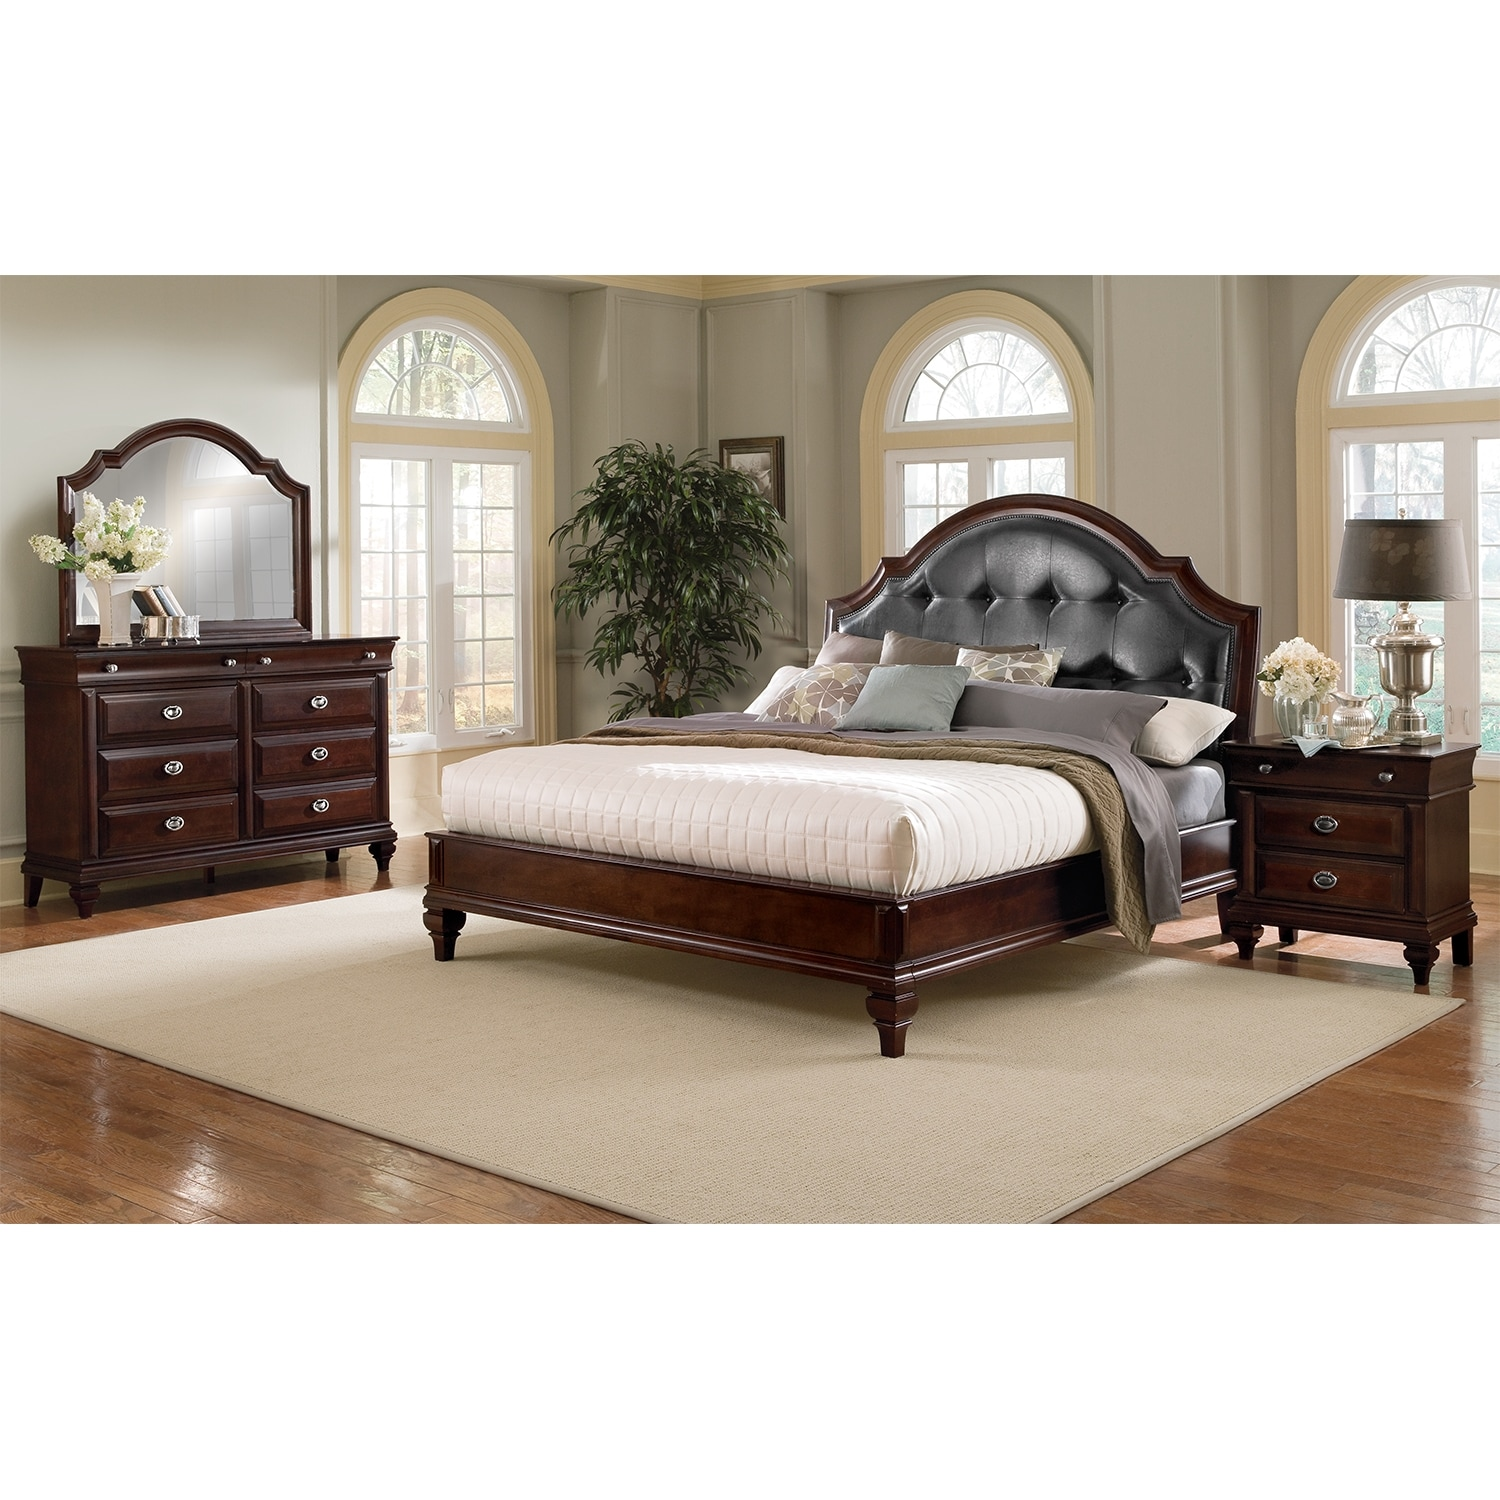 bedroom furniture manhattan 6 piece king bedroom set cherry